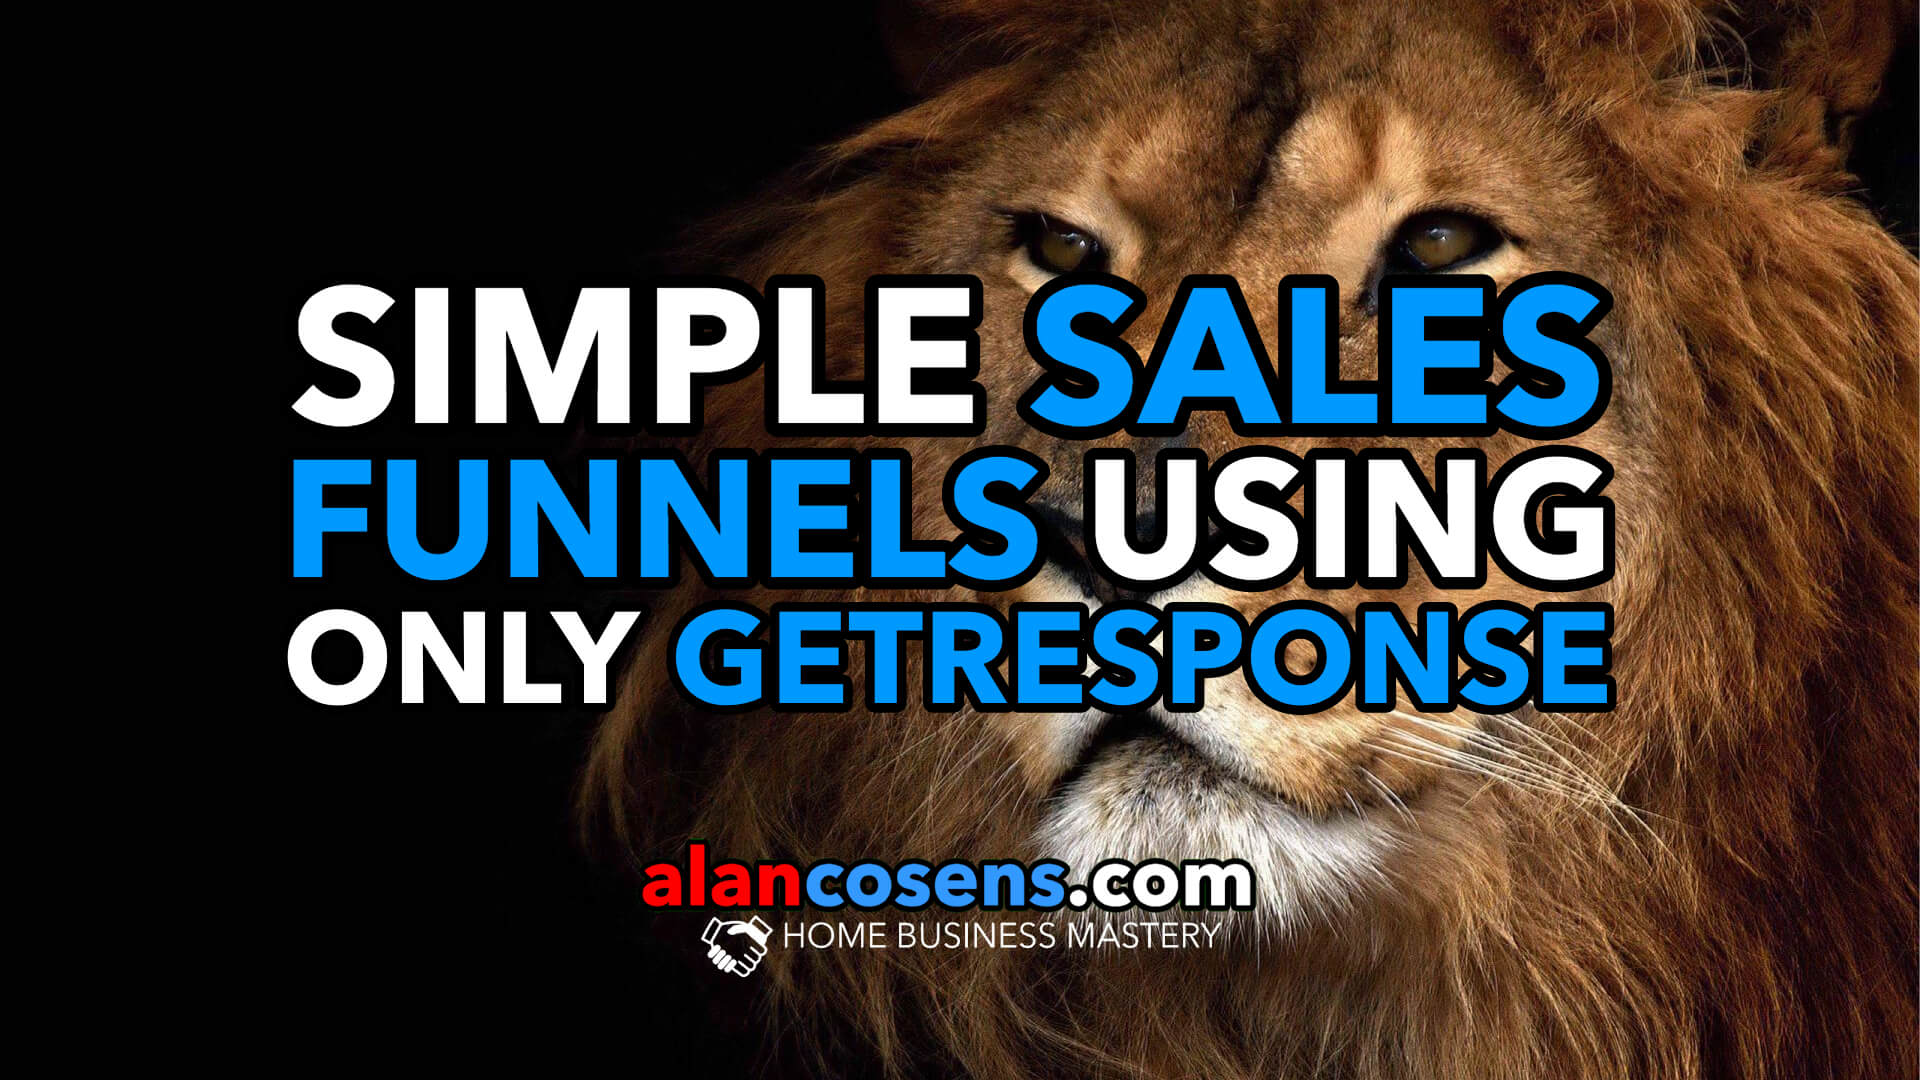 Create Simple Sales Funnels Using Only GetResponse